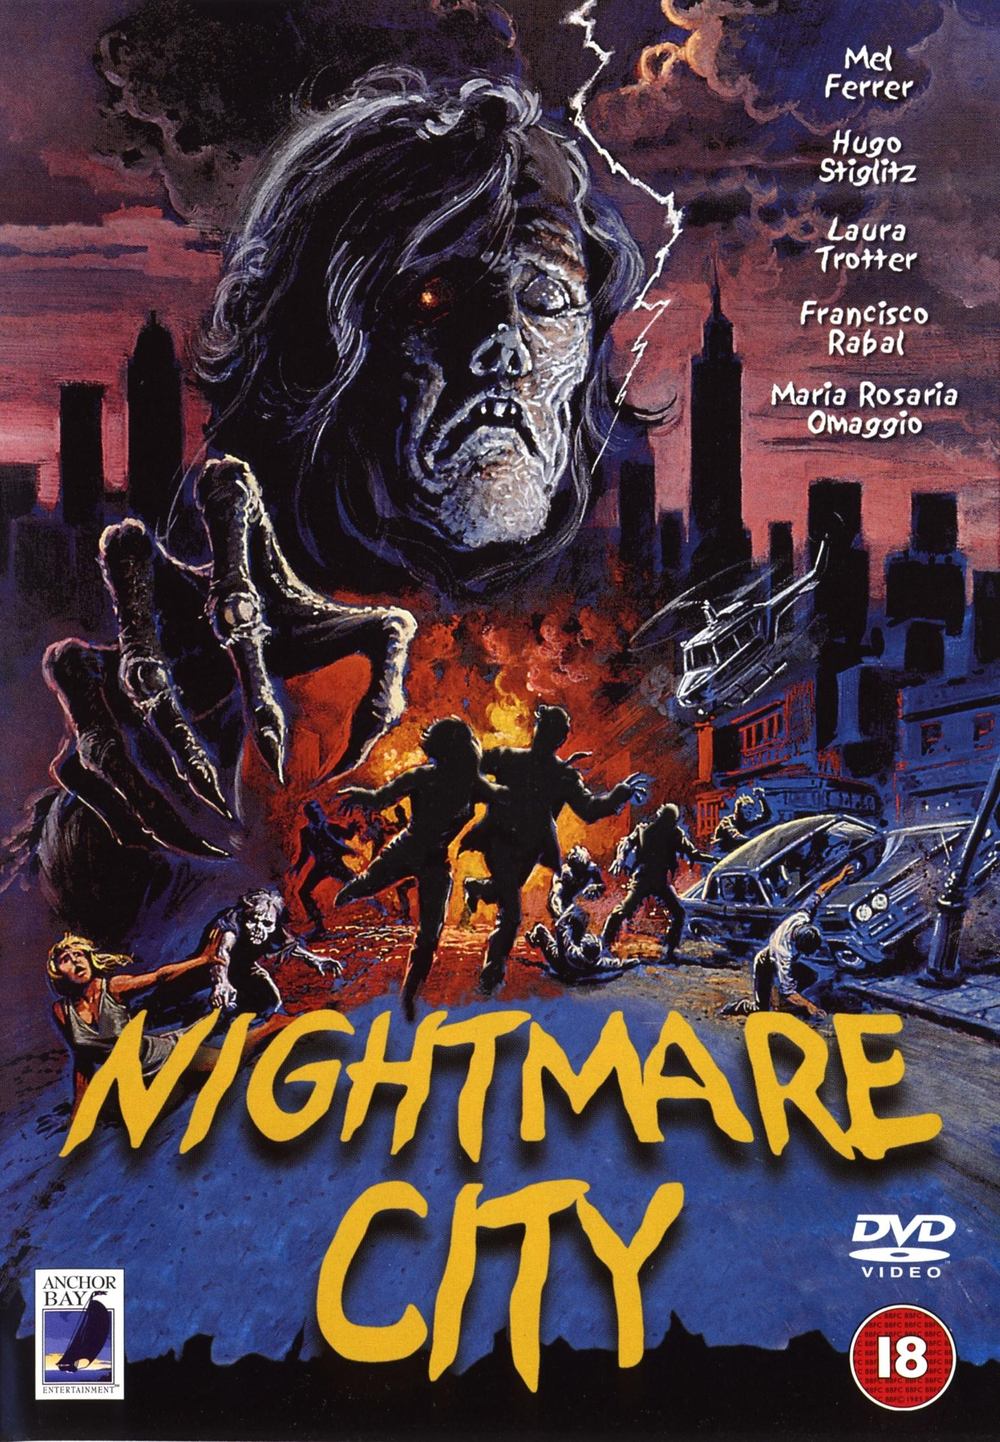 the-greatest-80s-zombie-film-youve-never-seen-nightmare-city.jpg